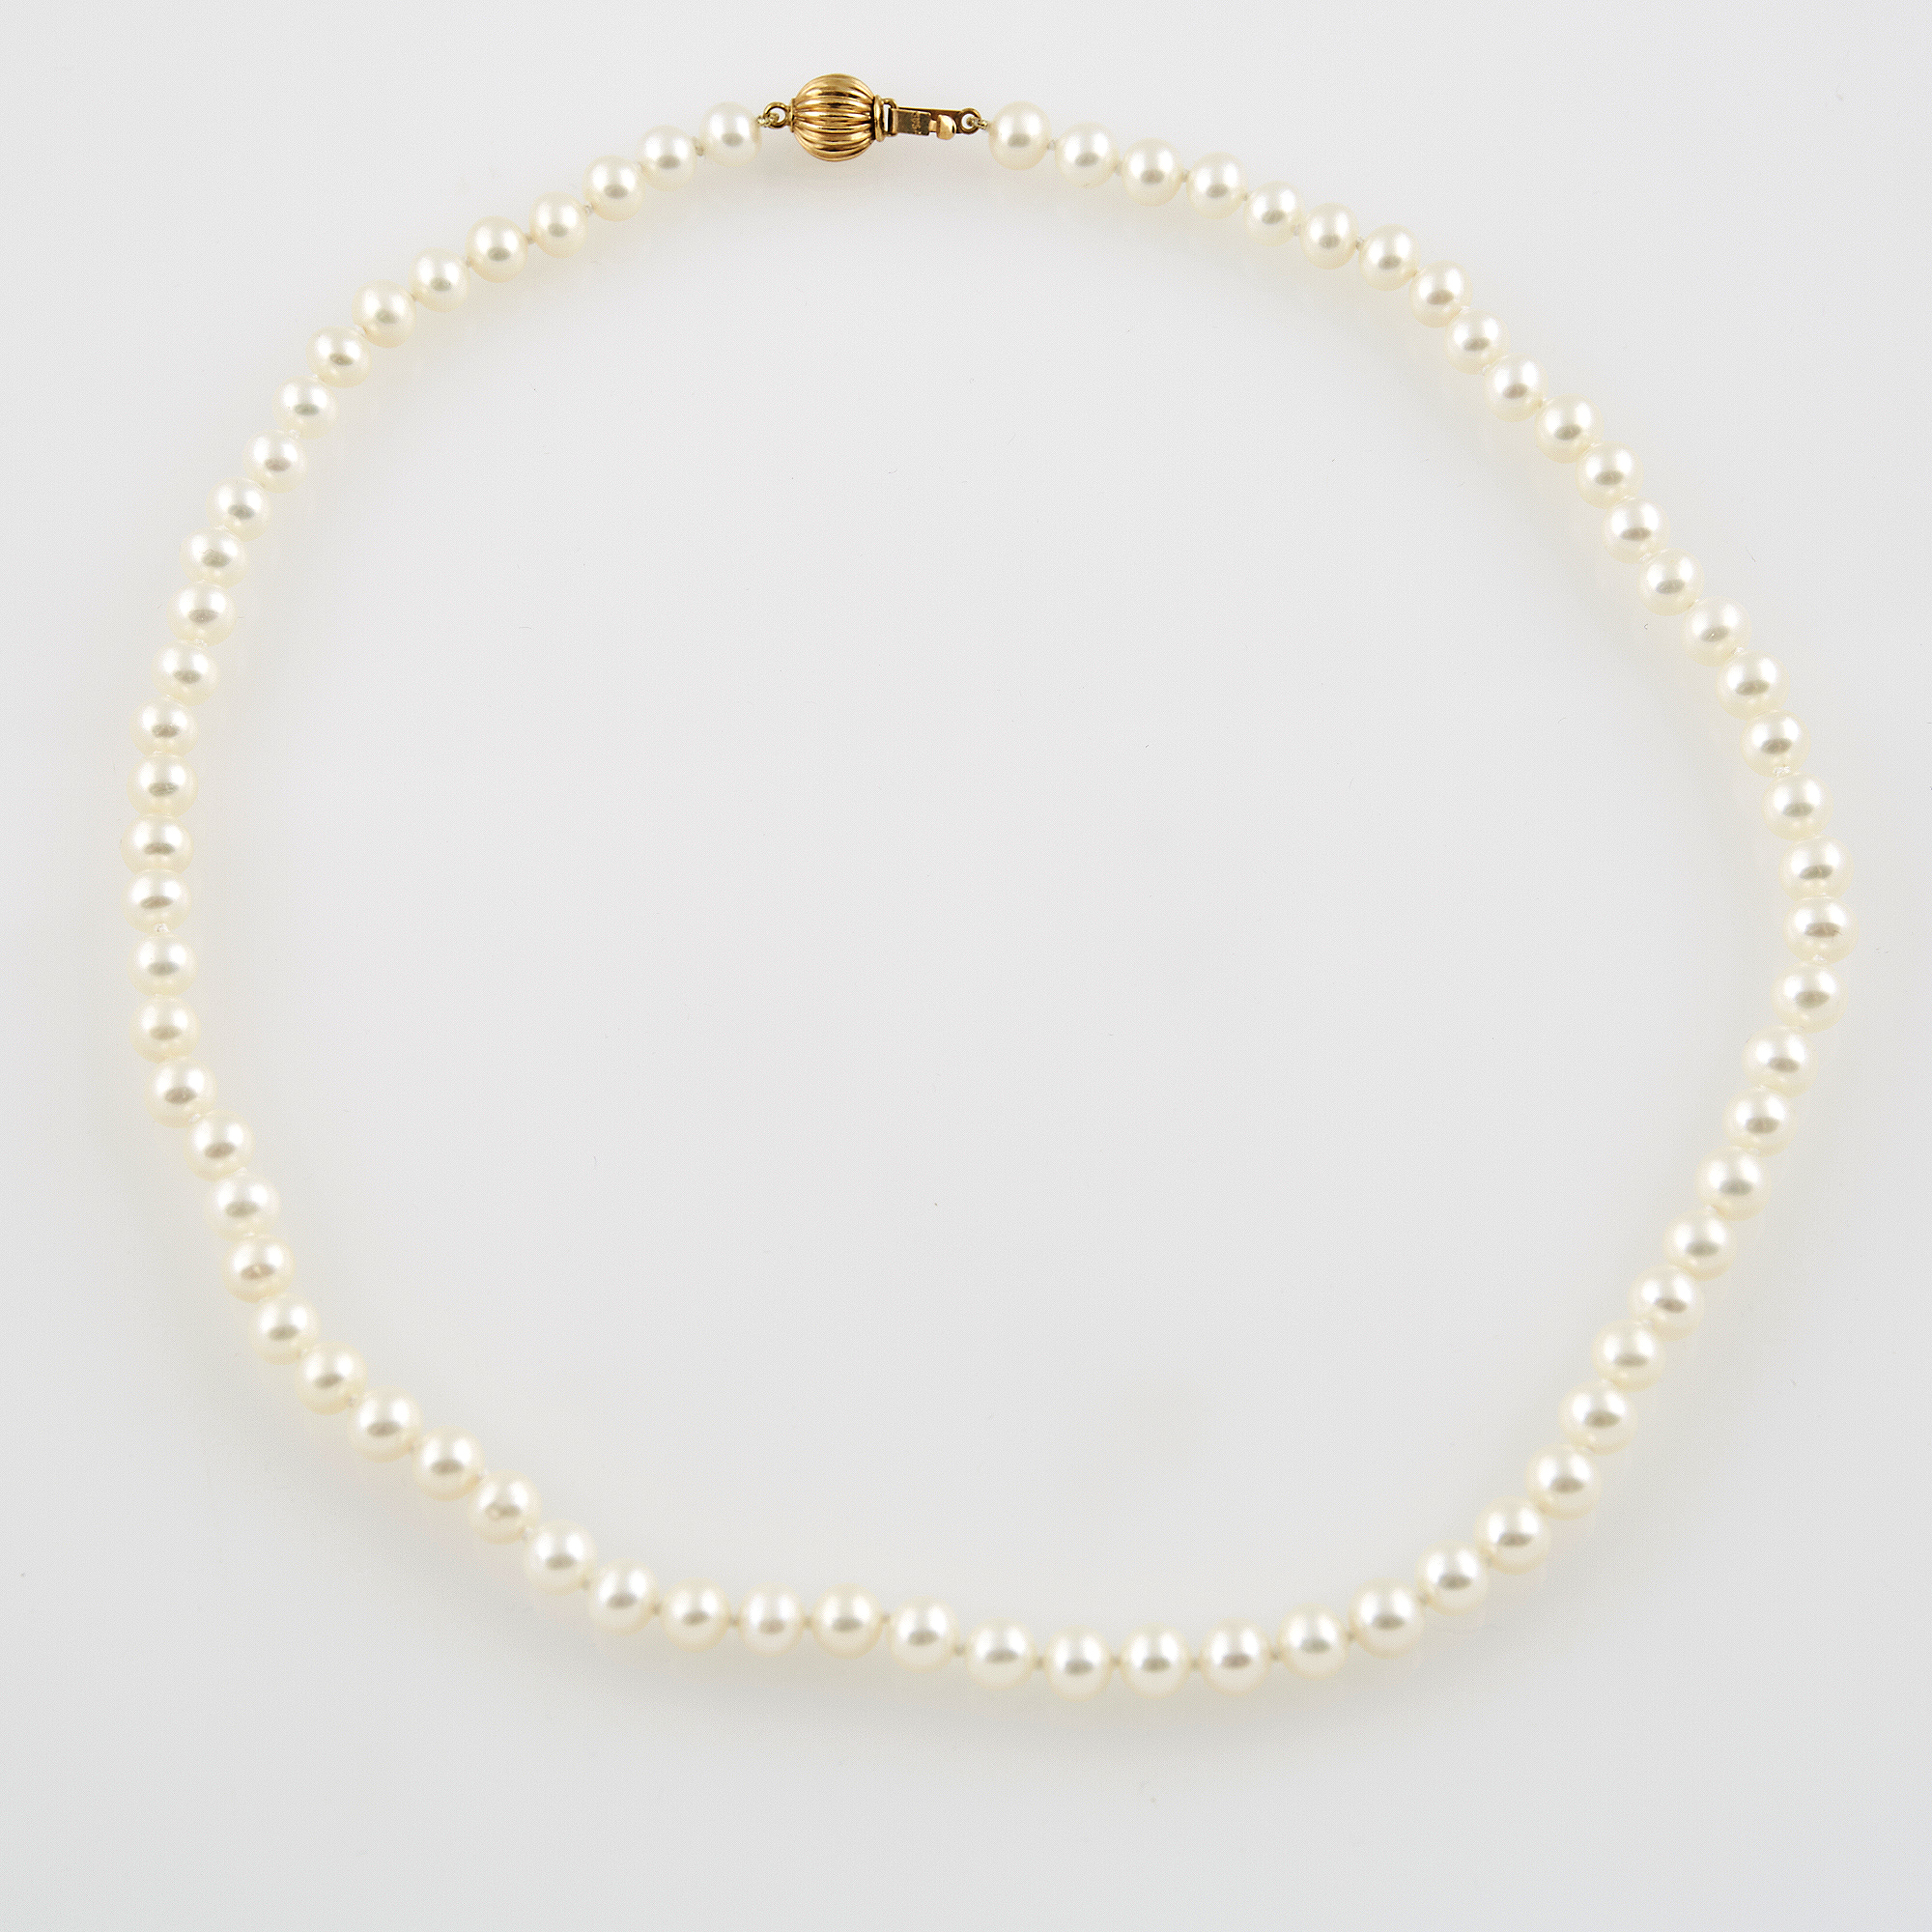 Lot image - Bead Necklace with gold clasp attached, 14K